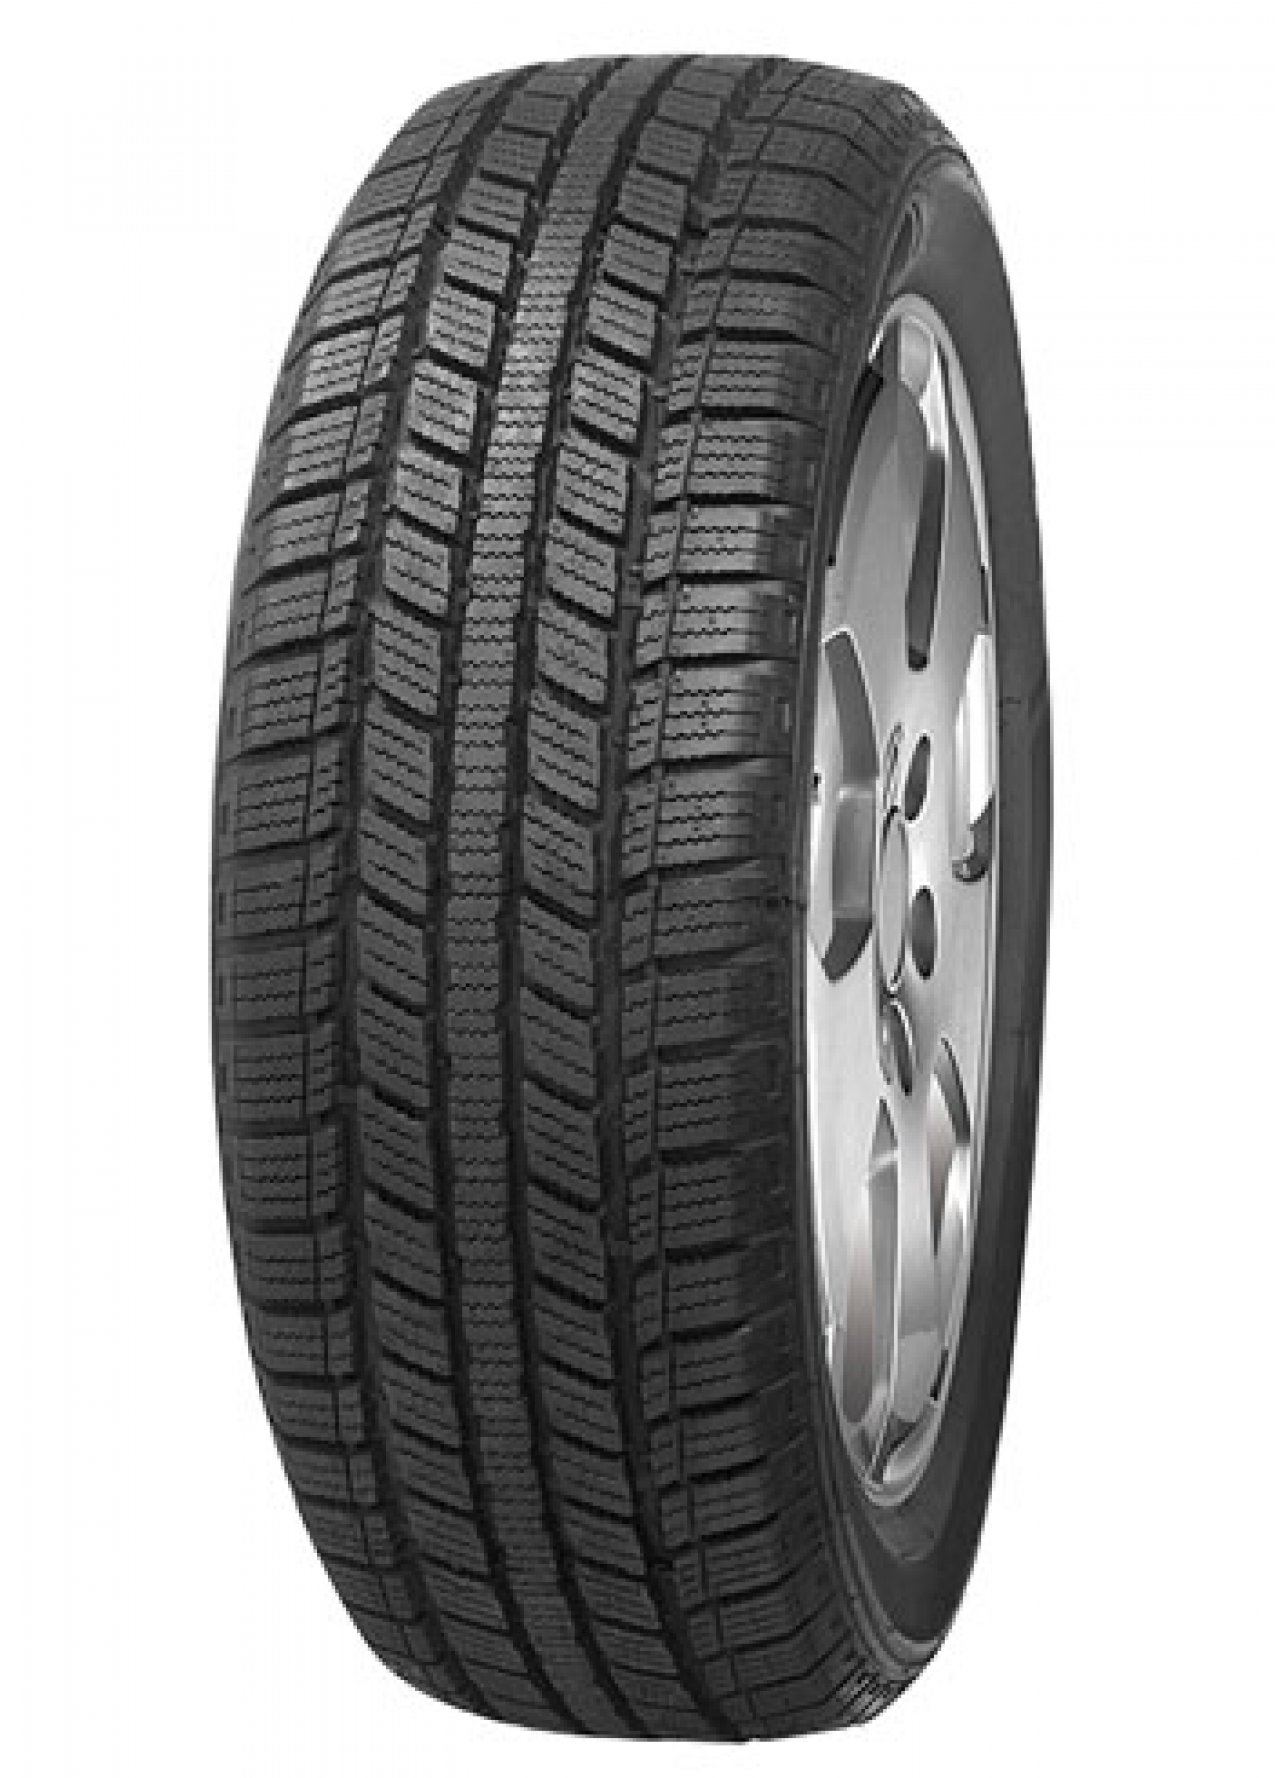 Gomme Nuove Imperial 215/60 R16C 103R SNOWDR 2 M+S pneumatici nuovi Invernale